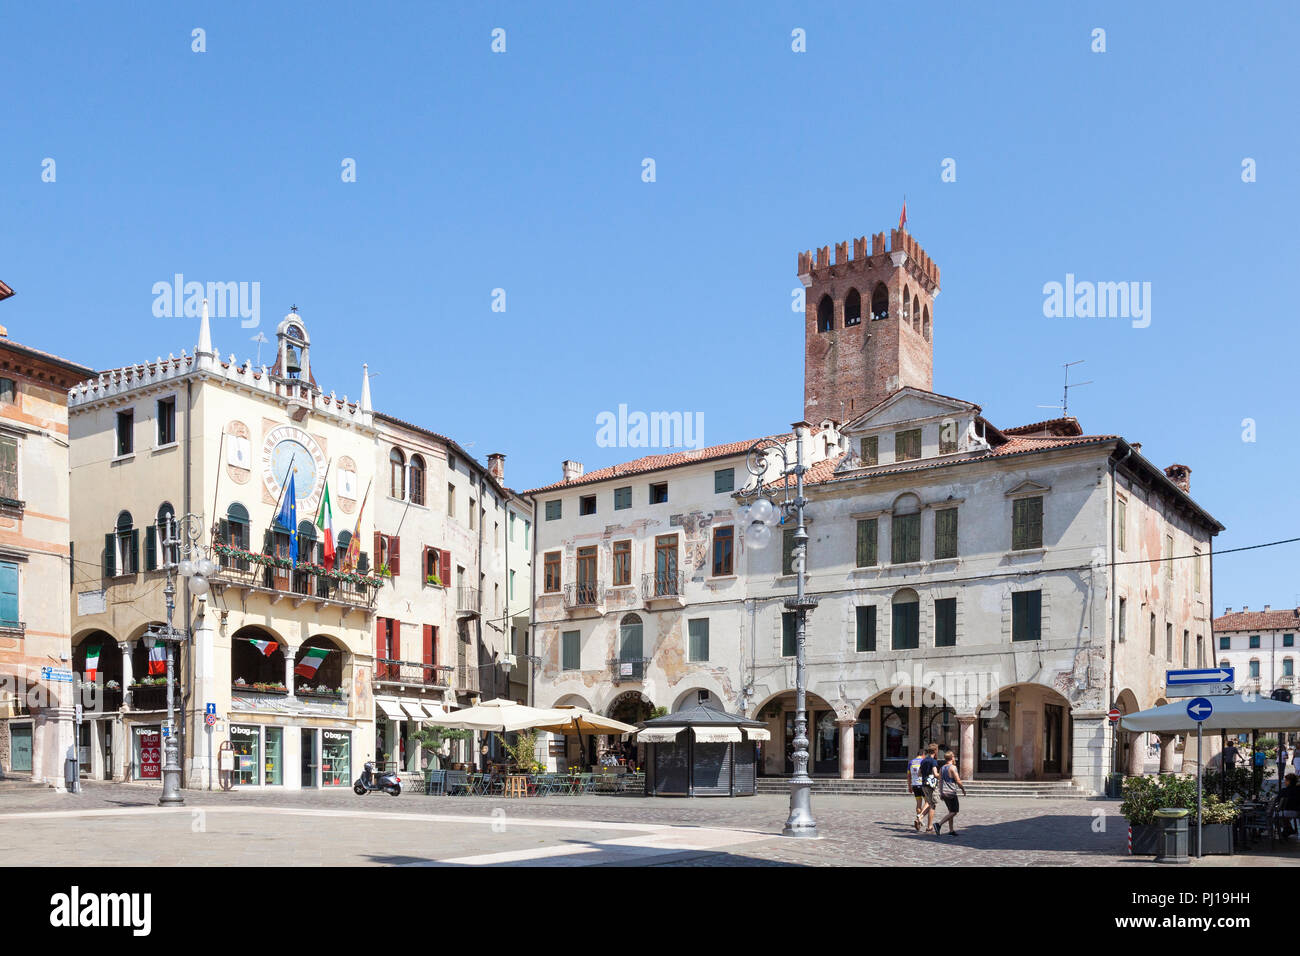 Piazza Liberta, Bassano del grappa, Vicenza, Italy with open air restaurant, wall frescoes and the Civic Tower in the background, blue sky midday - Stock Image